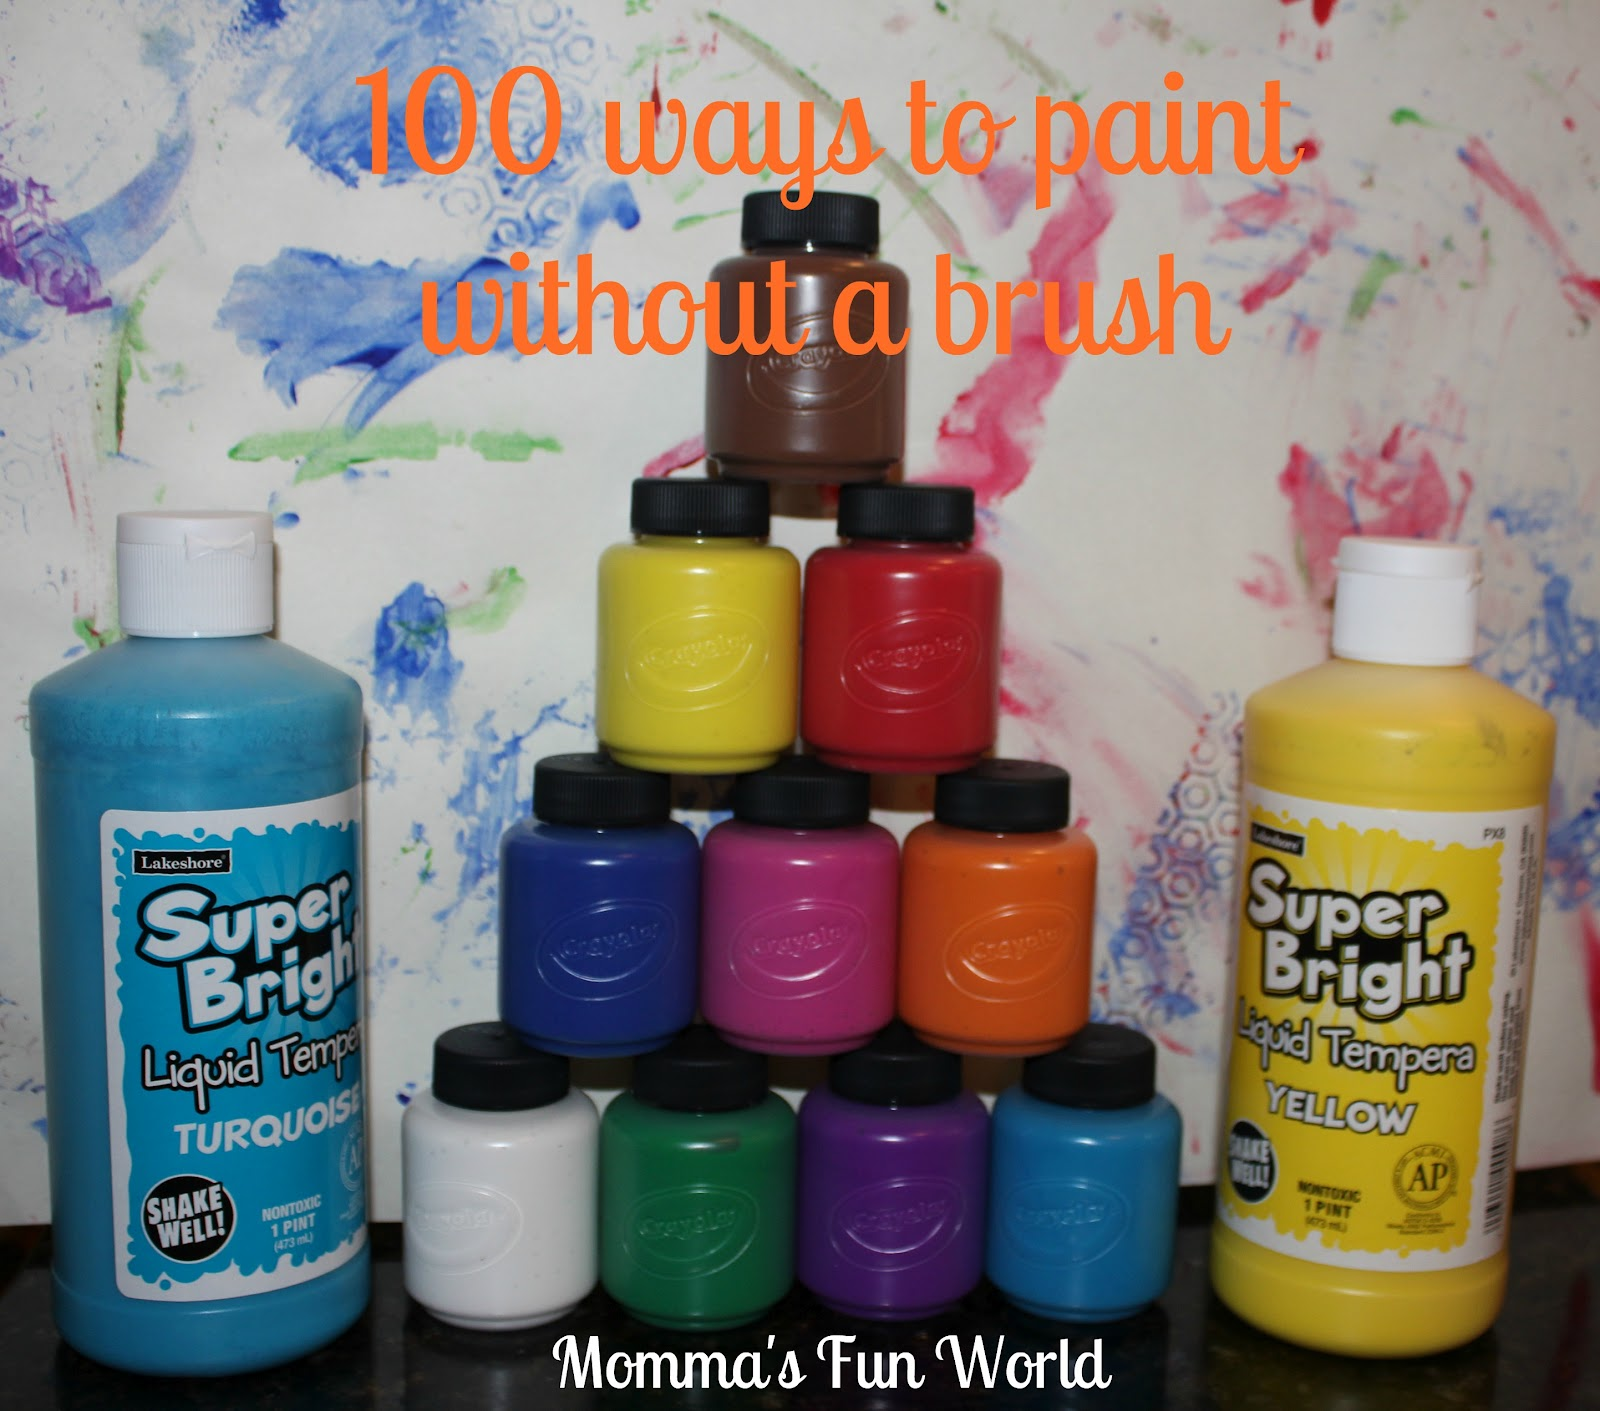 Momma's Fun World: 100 ways to paint not using a brush